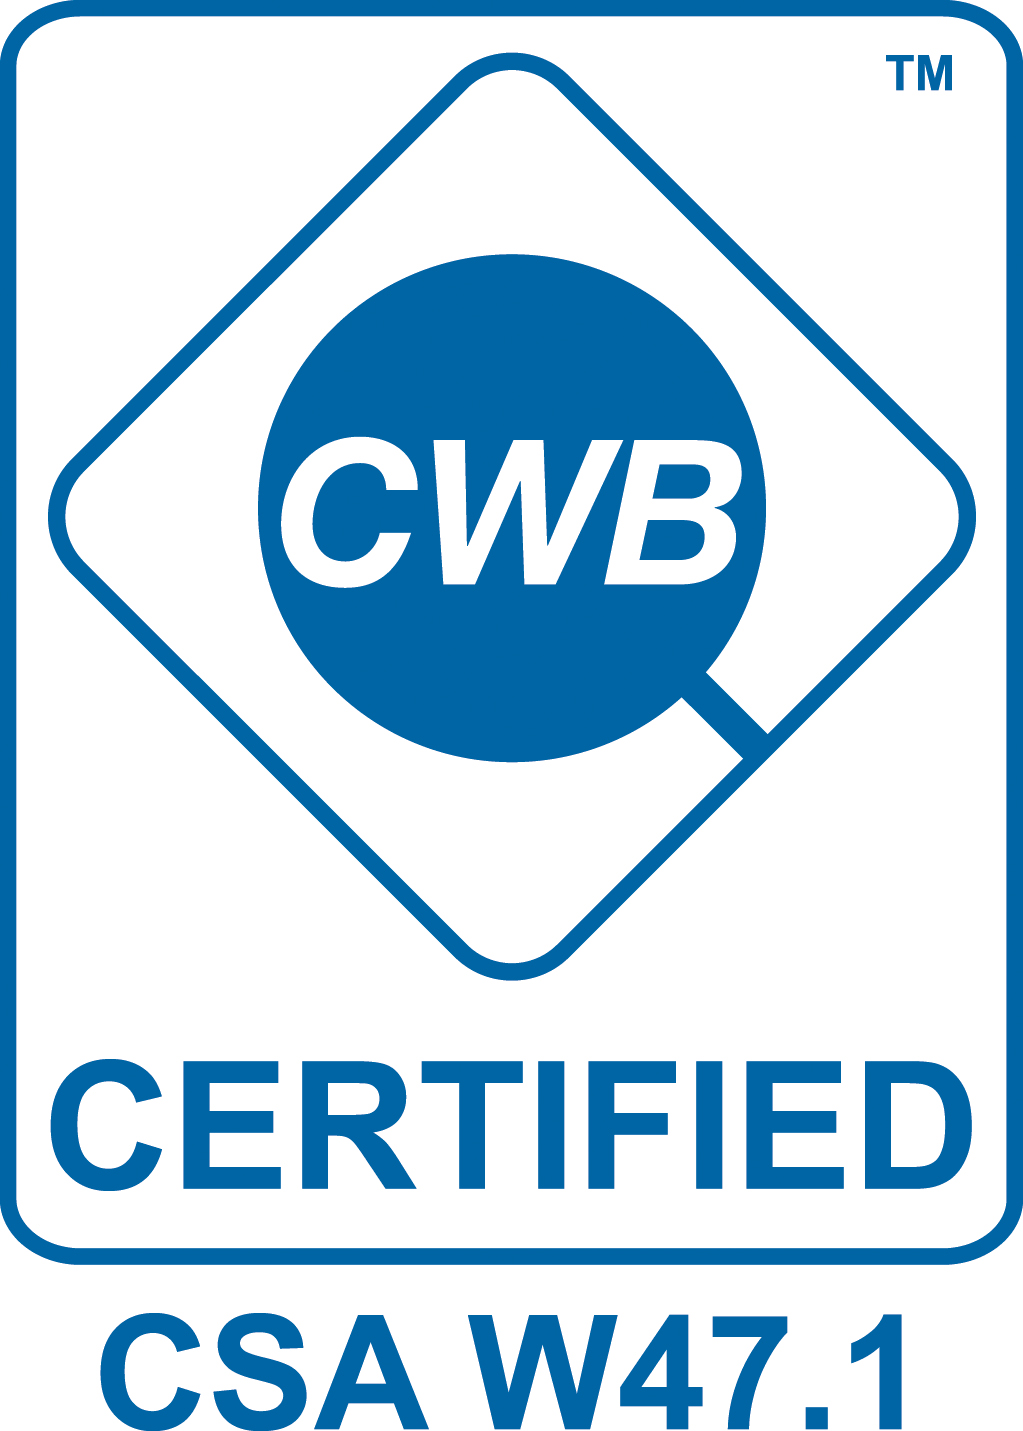 CWB-Certification-Mark-EN-W47_1.jpg